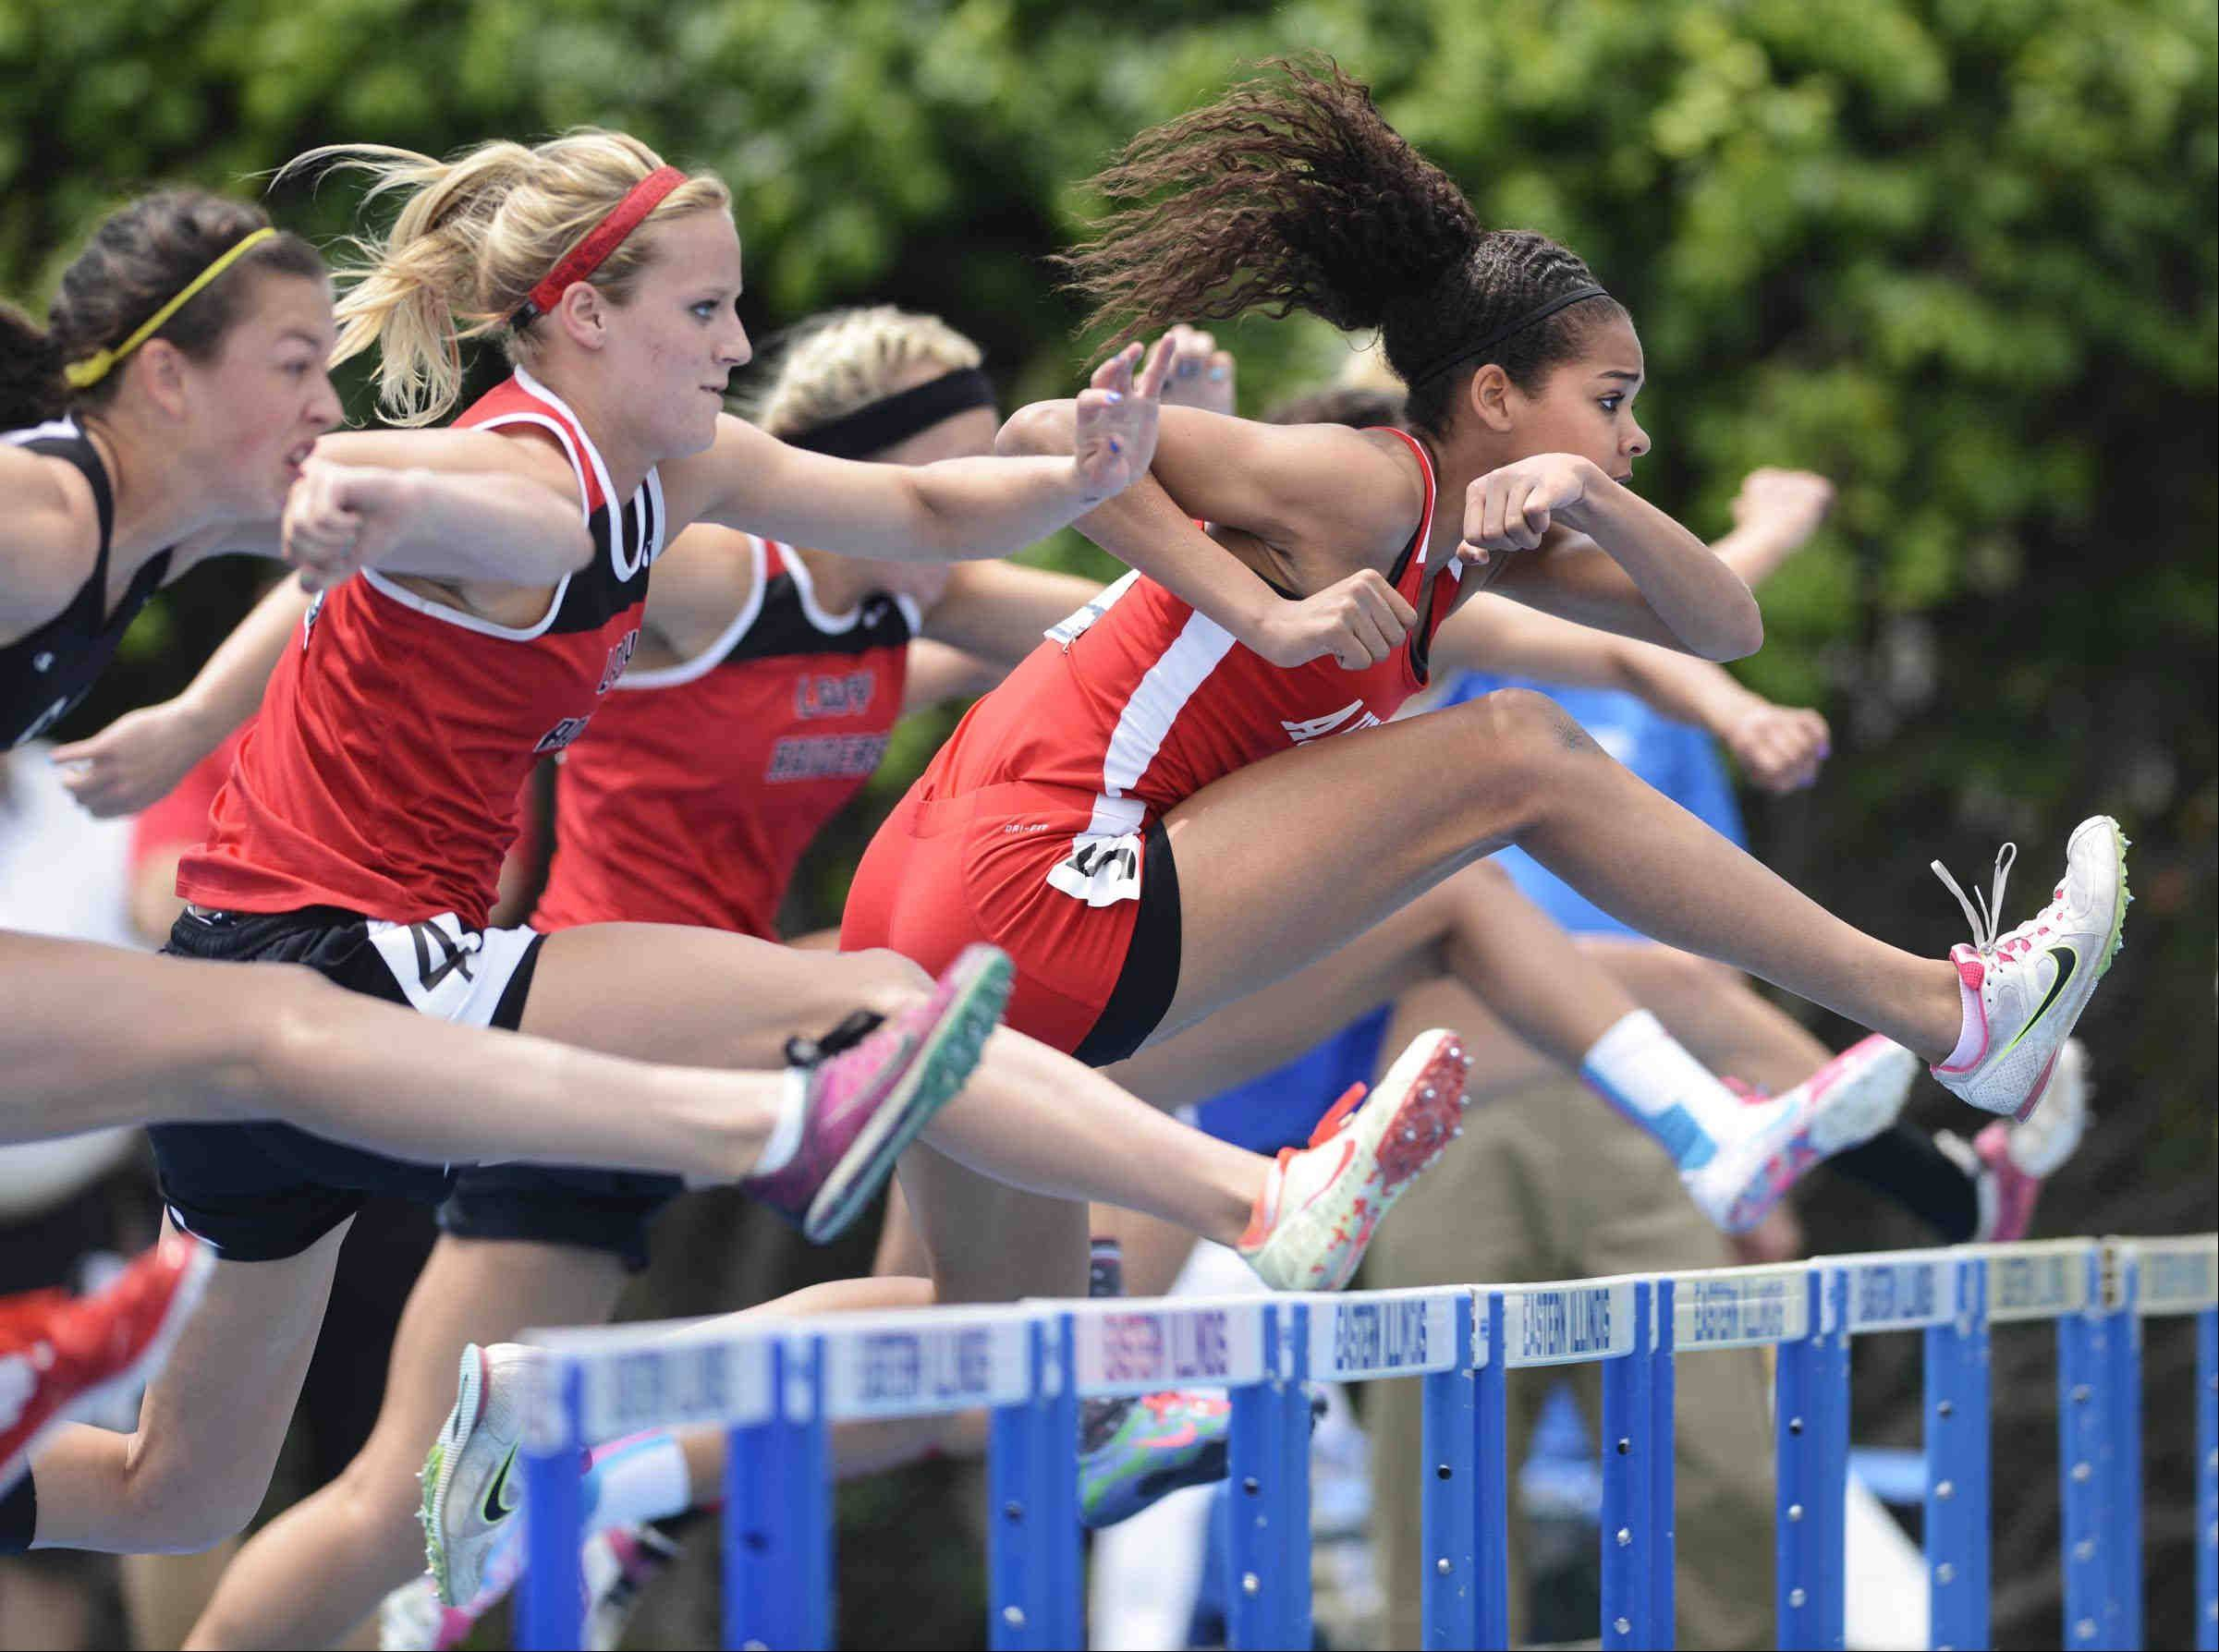 Aurora Christian�s Peyton Wade leads the field over the first hurdle on her way to a state championship in the 100 meter high hurdles Saturday at the Class 1A girls state track and field finals at O�Brien Stadium at Eastern Illinois University in Charleston.